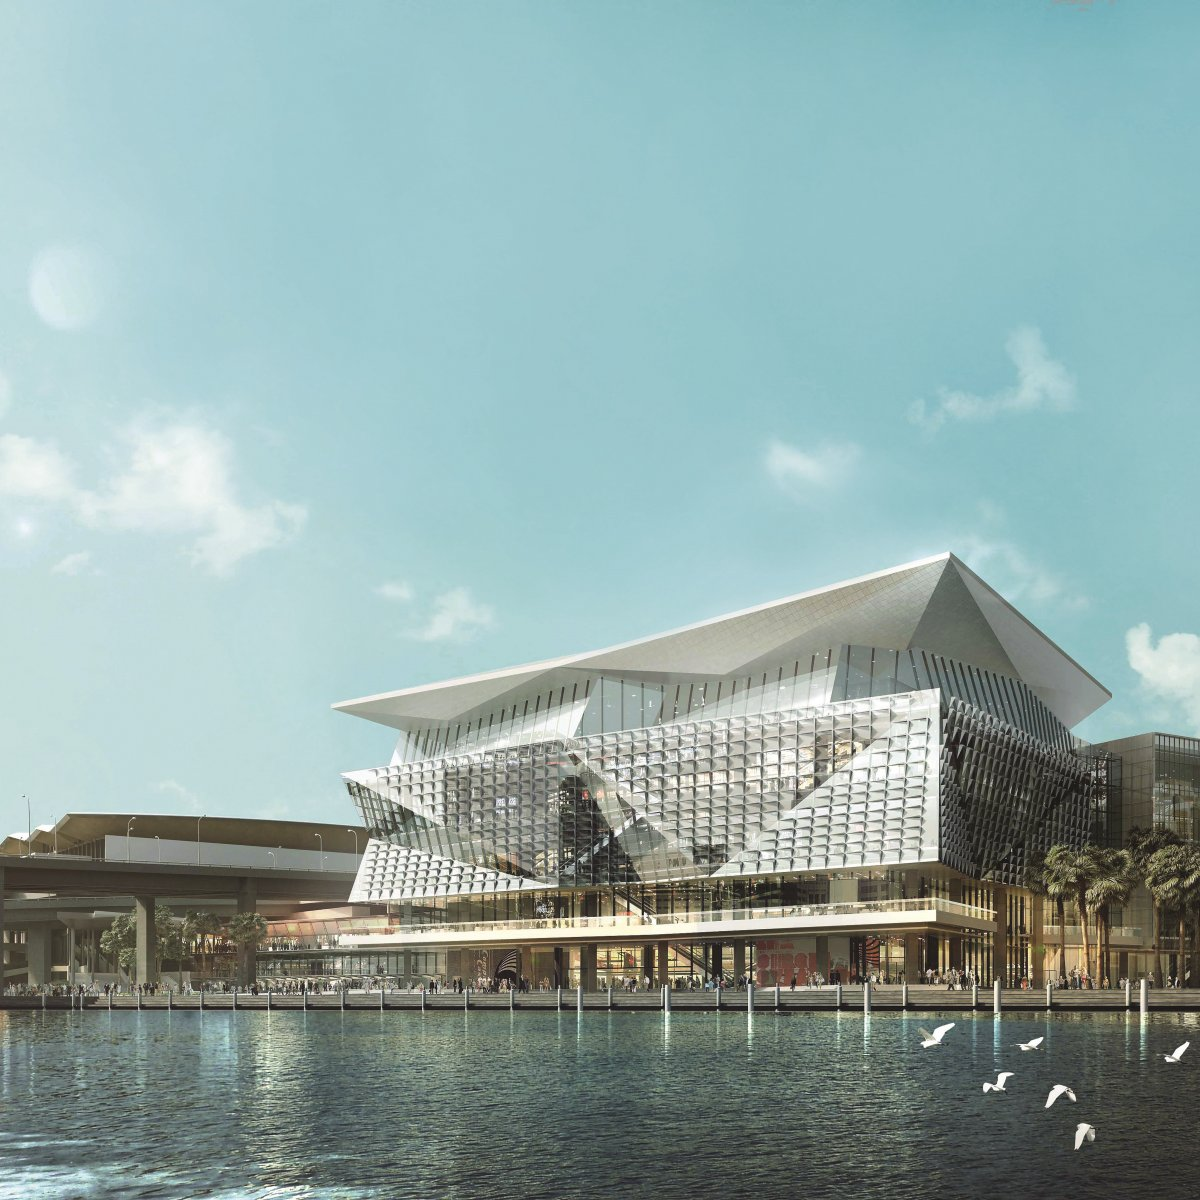 Exterior Image of International Convention Center Sydney during the day on the water